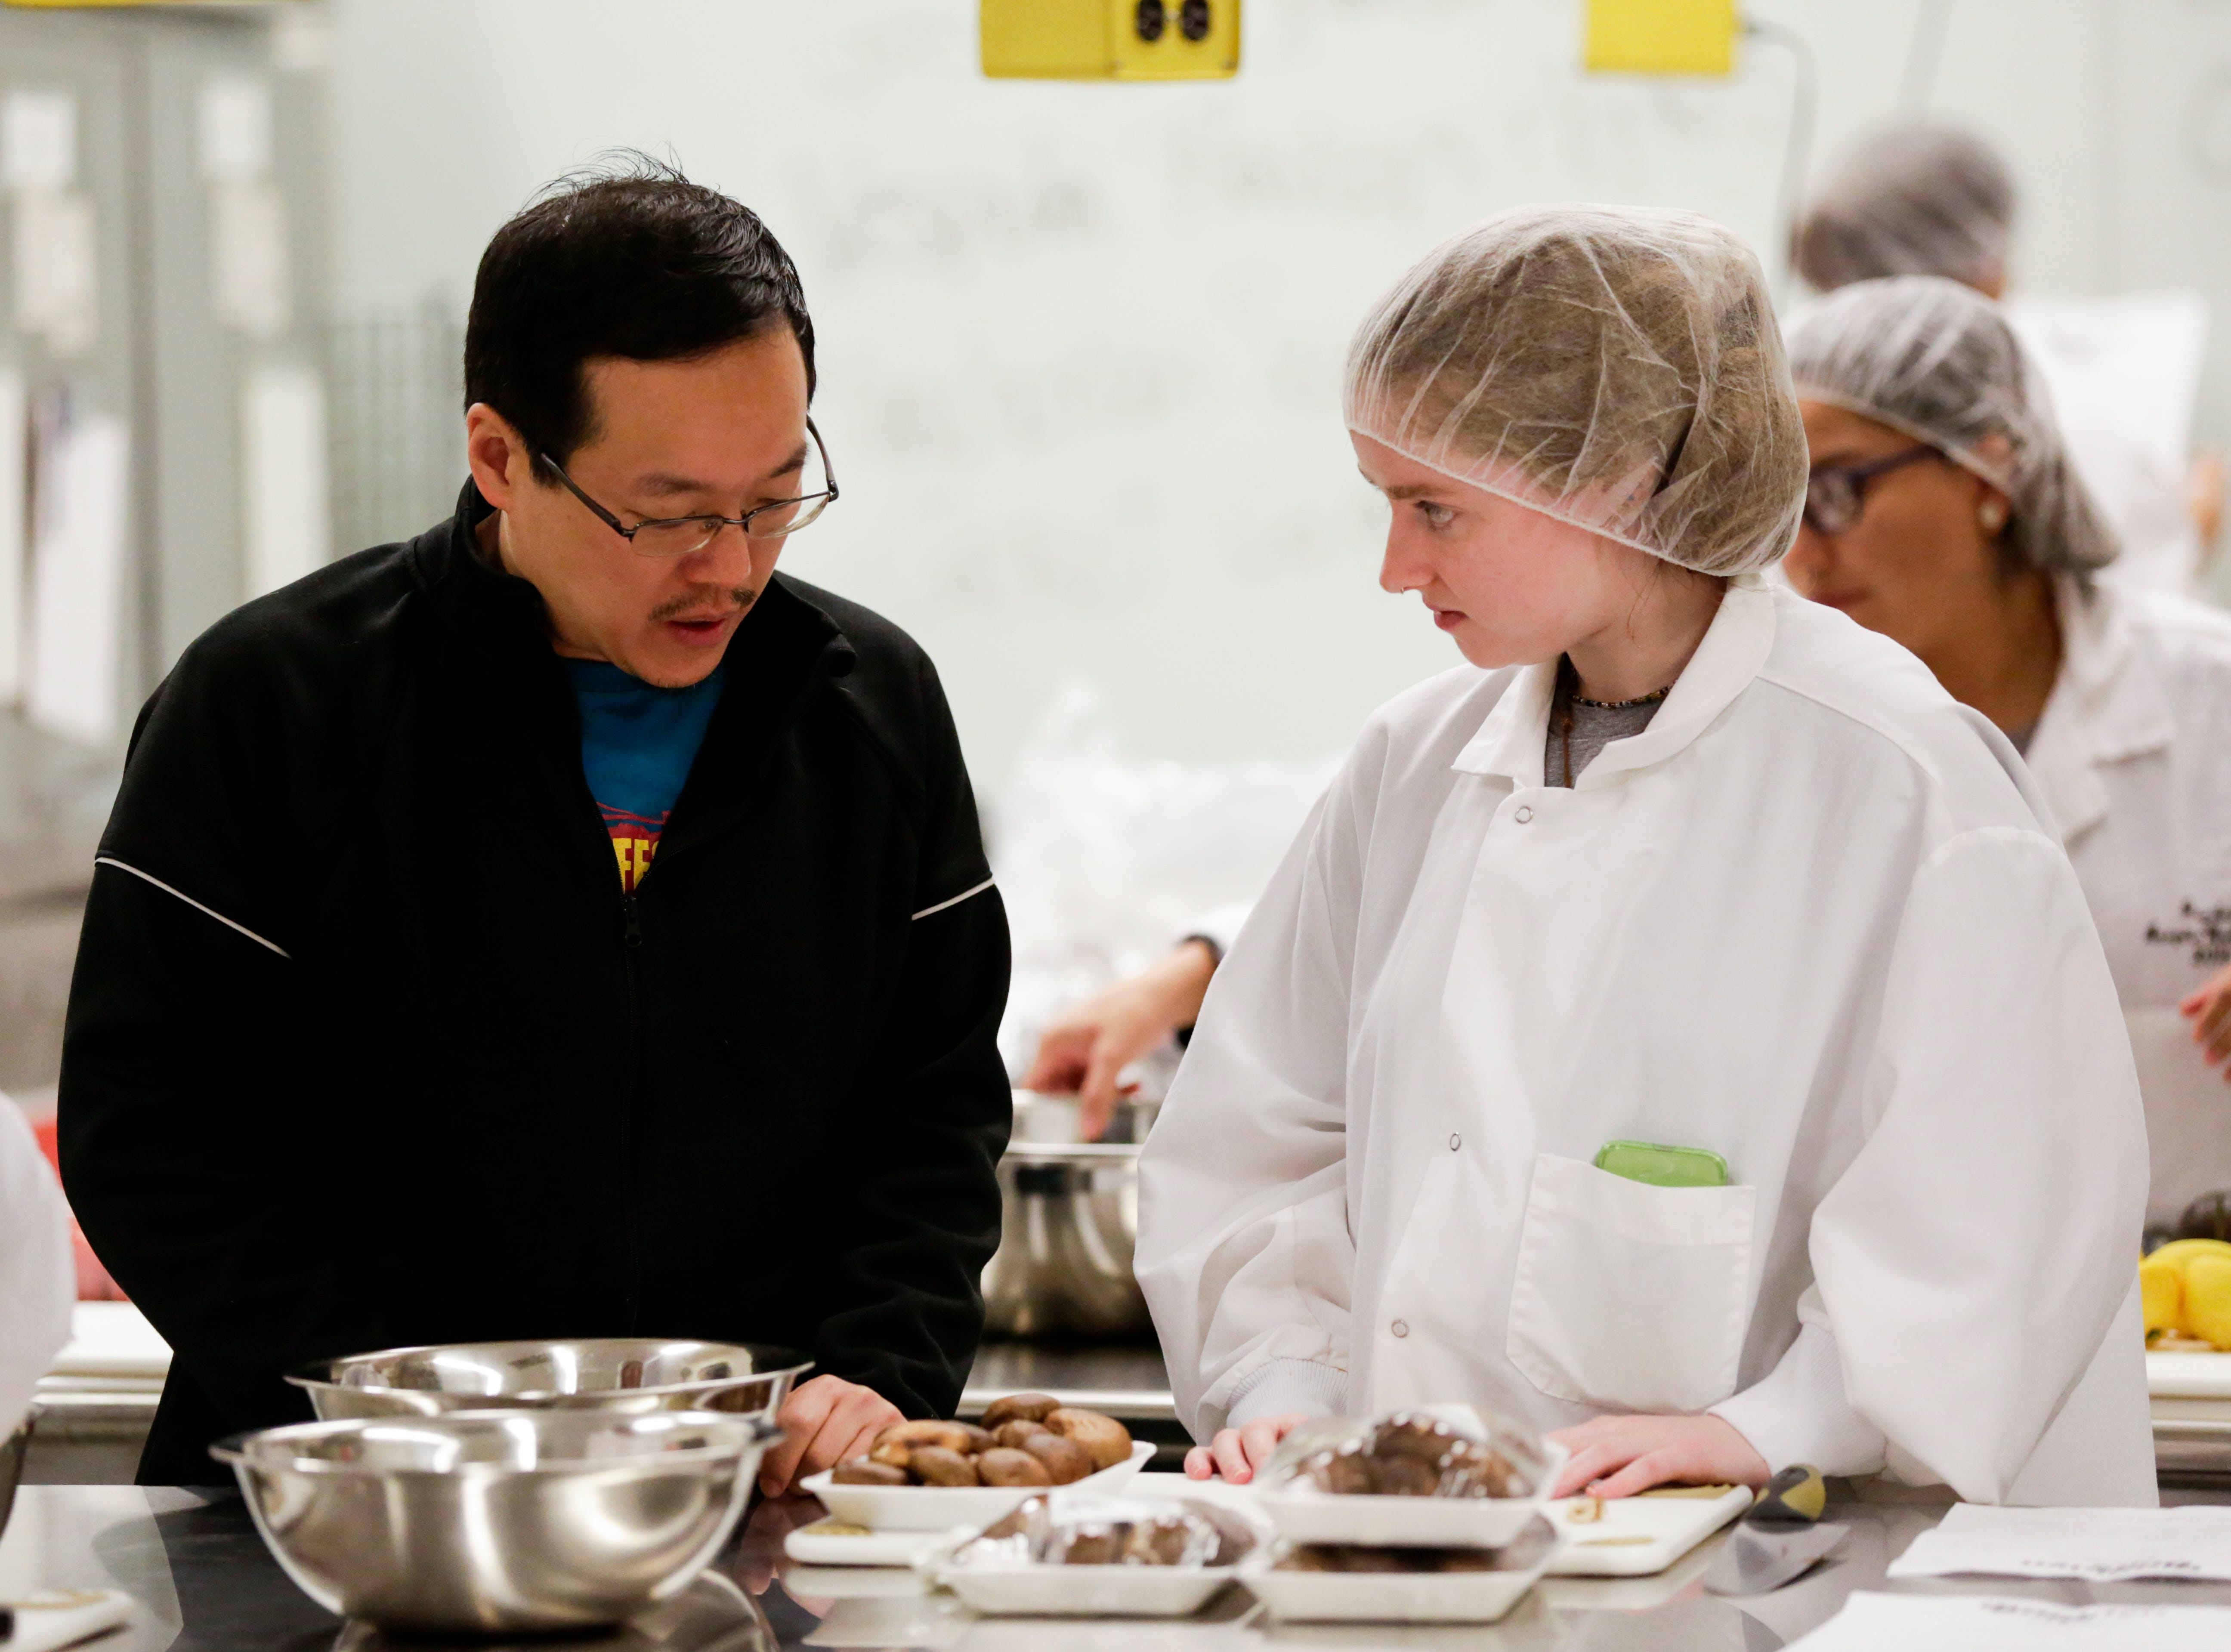 Joseph Yoon, left, of Brooklyn Bugs, talks with Sasha Nerney, a freshman food science student, as they prep dishes for Spring Fest, Friday, April 5, 2019, at Purdue University in West Lafayette. Yoon, the executive director of Brooklyn Bugs, will serve insect incorporated dishes to students during Spring Fest Saturday.